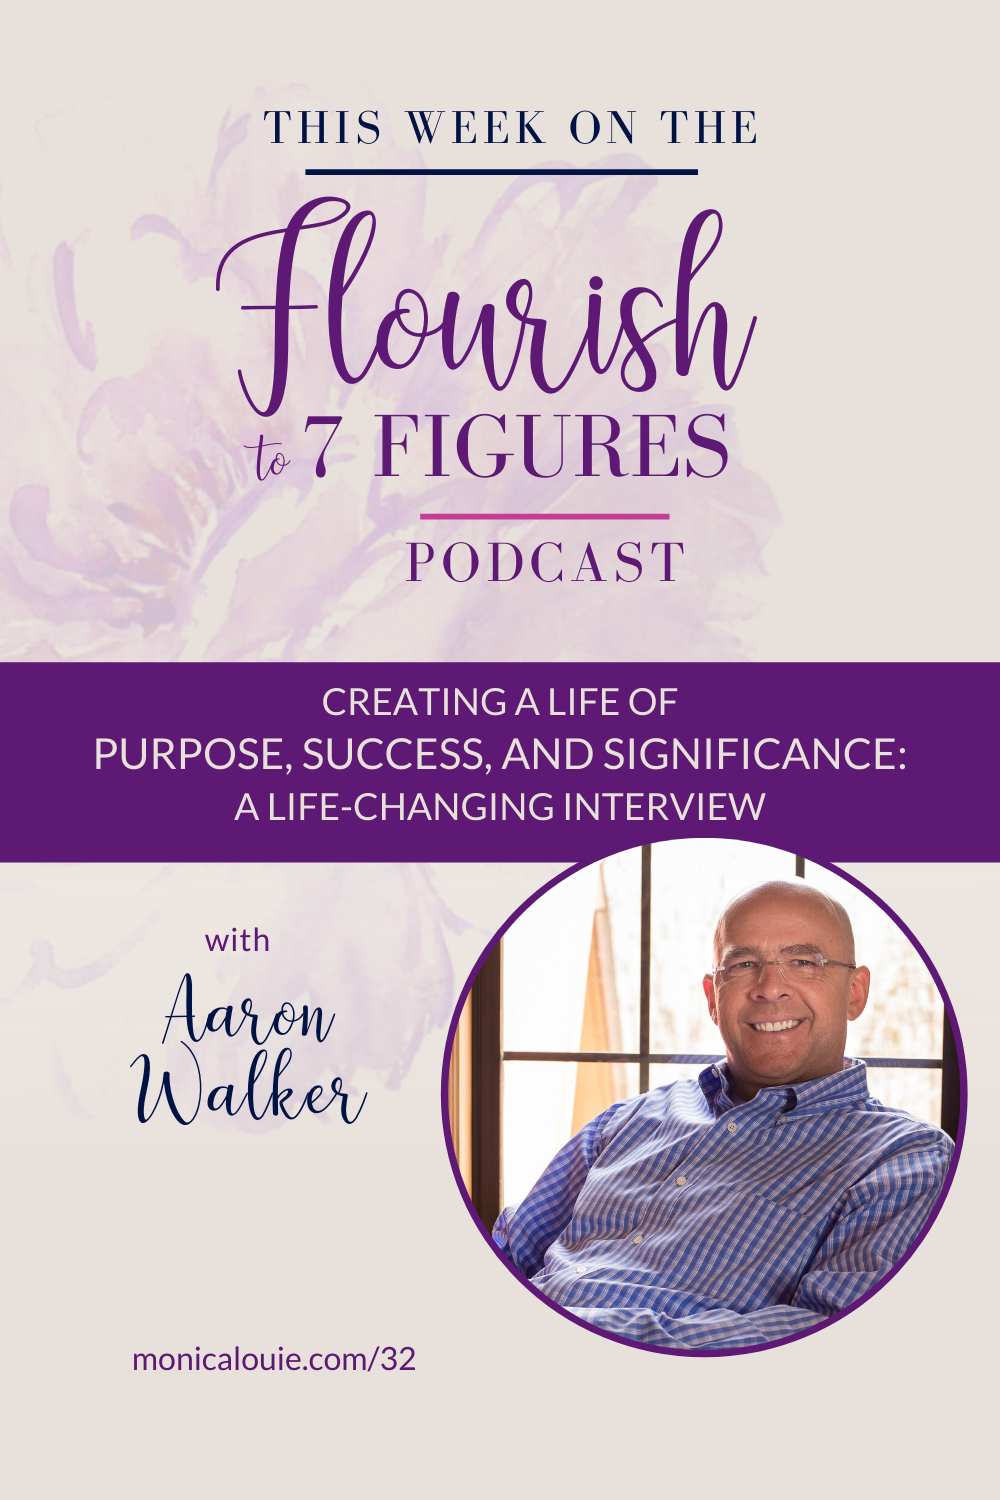 Creating a Life of Purpose, Success, and Significance -- A Life-Changing Interview with Aaron Walker (Pinterest)